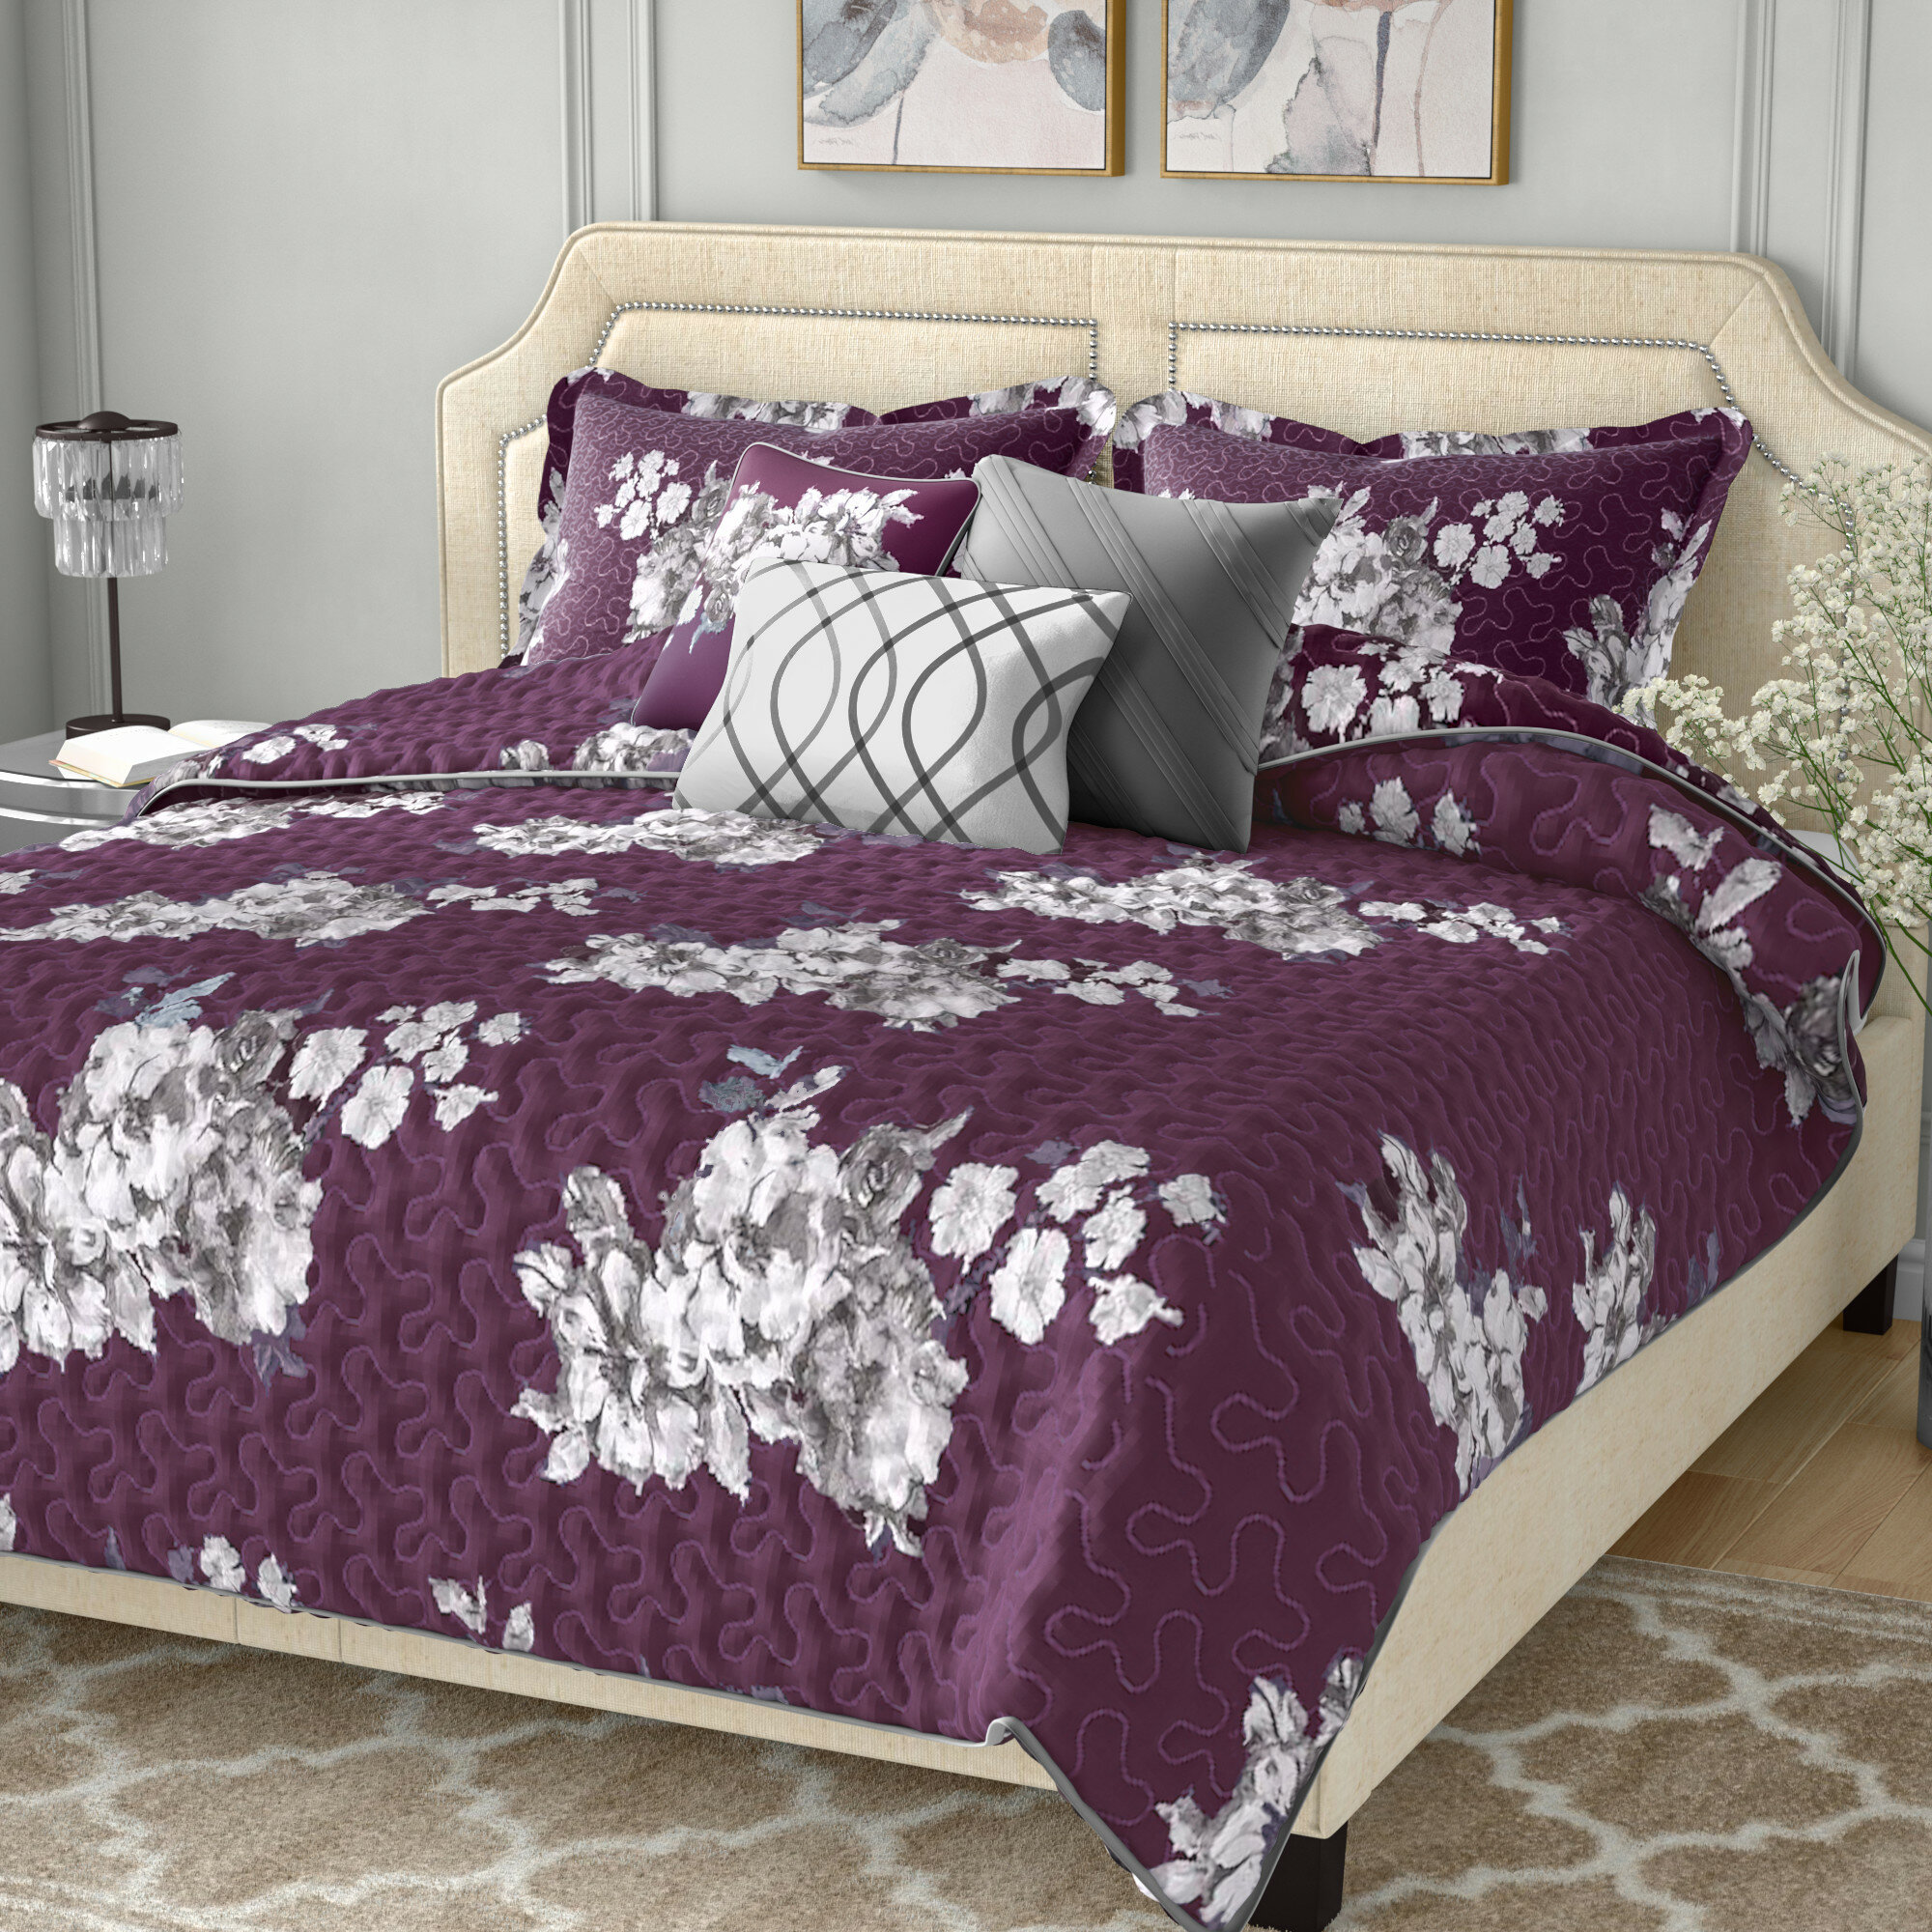 dotted purple bedding com quilt your ip walmart damask comforter zone set